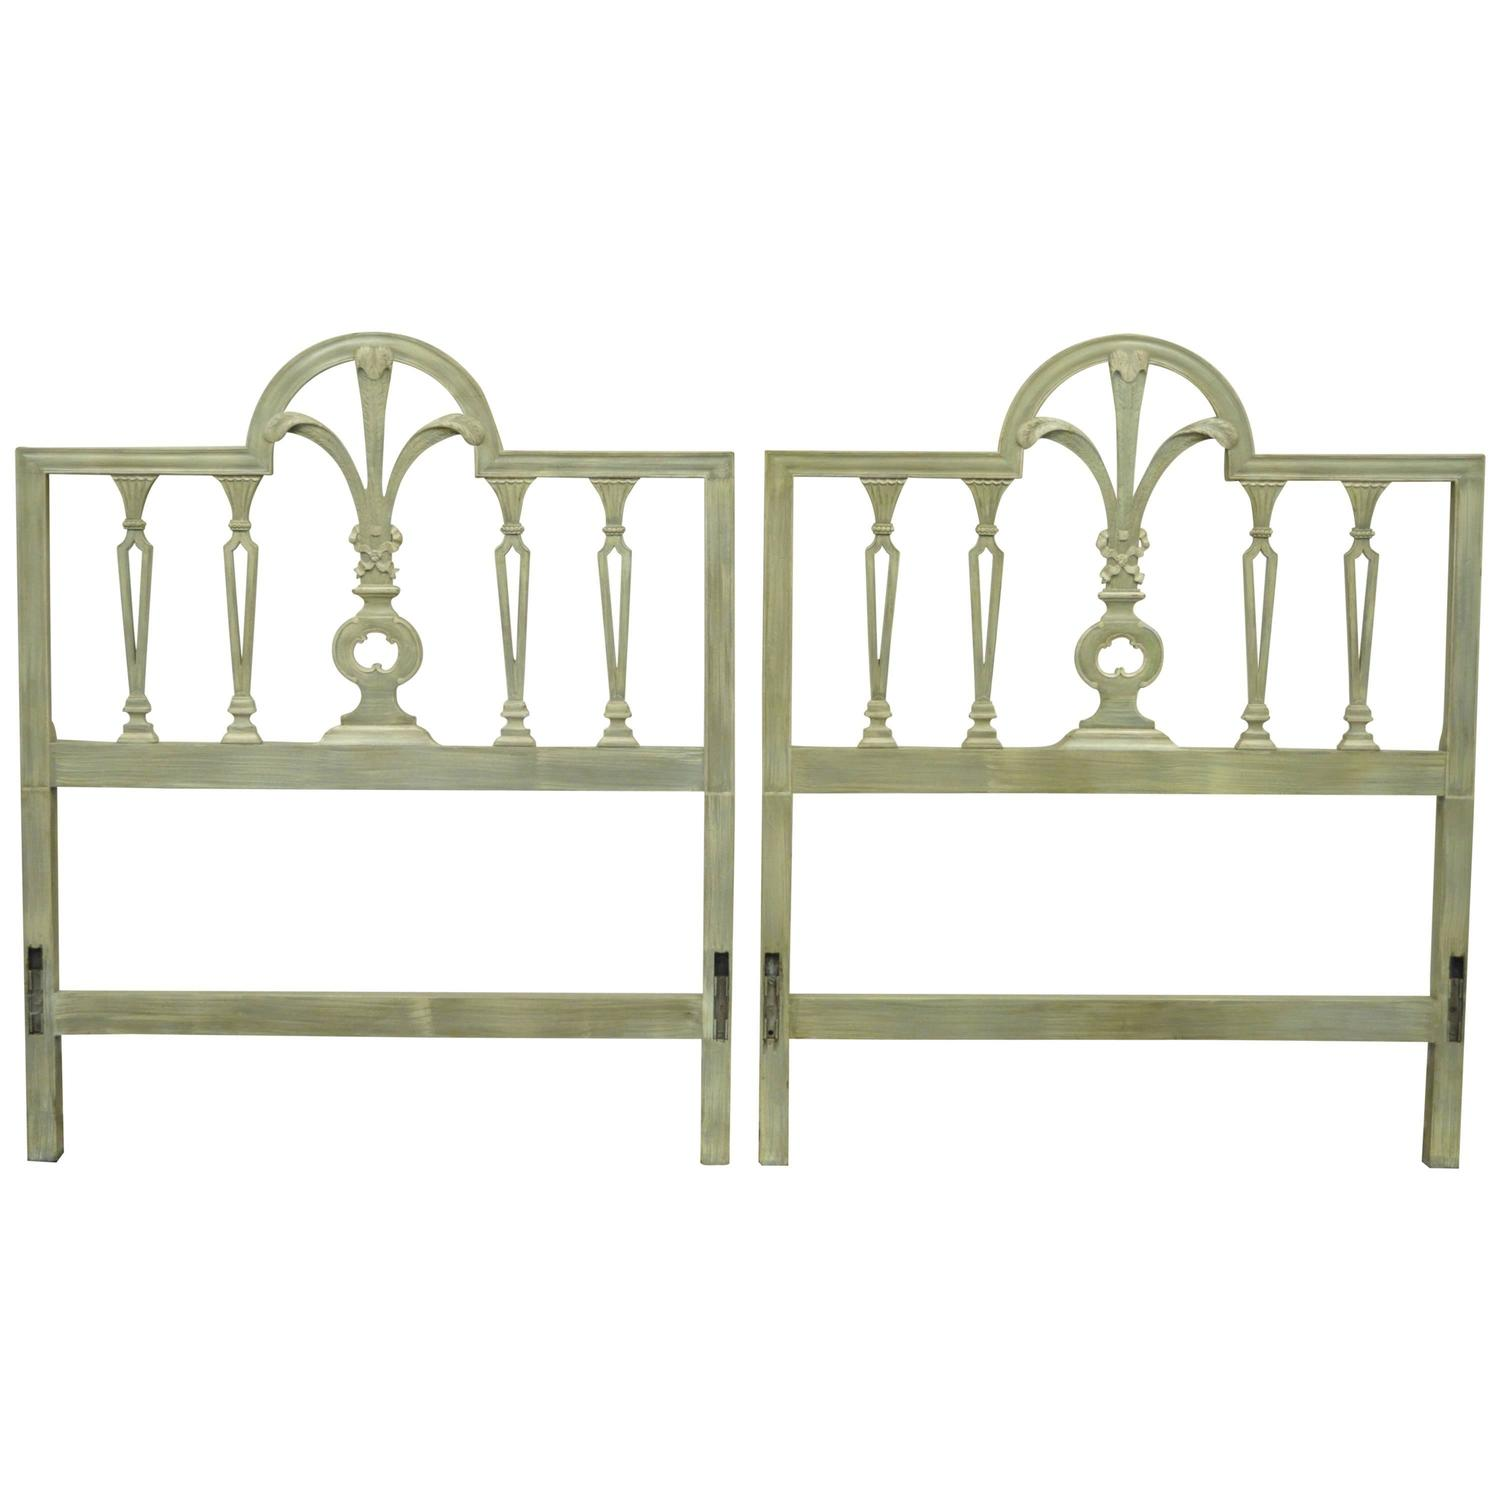 underneath beds cheapest drawers headboard furniture withers storage king plans frames for headboards double full archived with cheap single bed queen kingage on frame